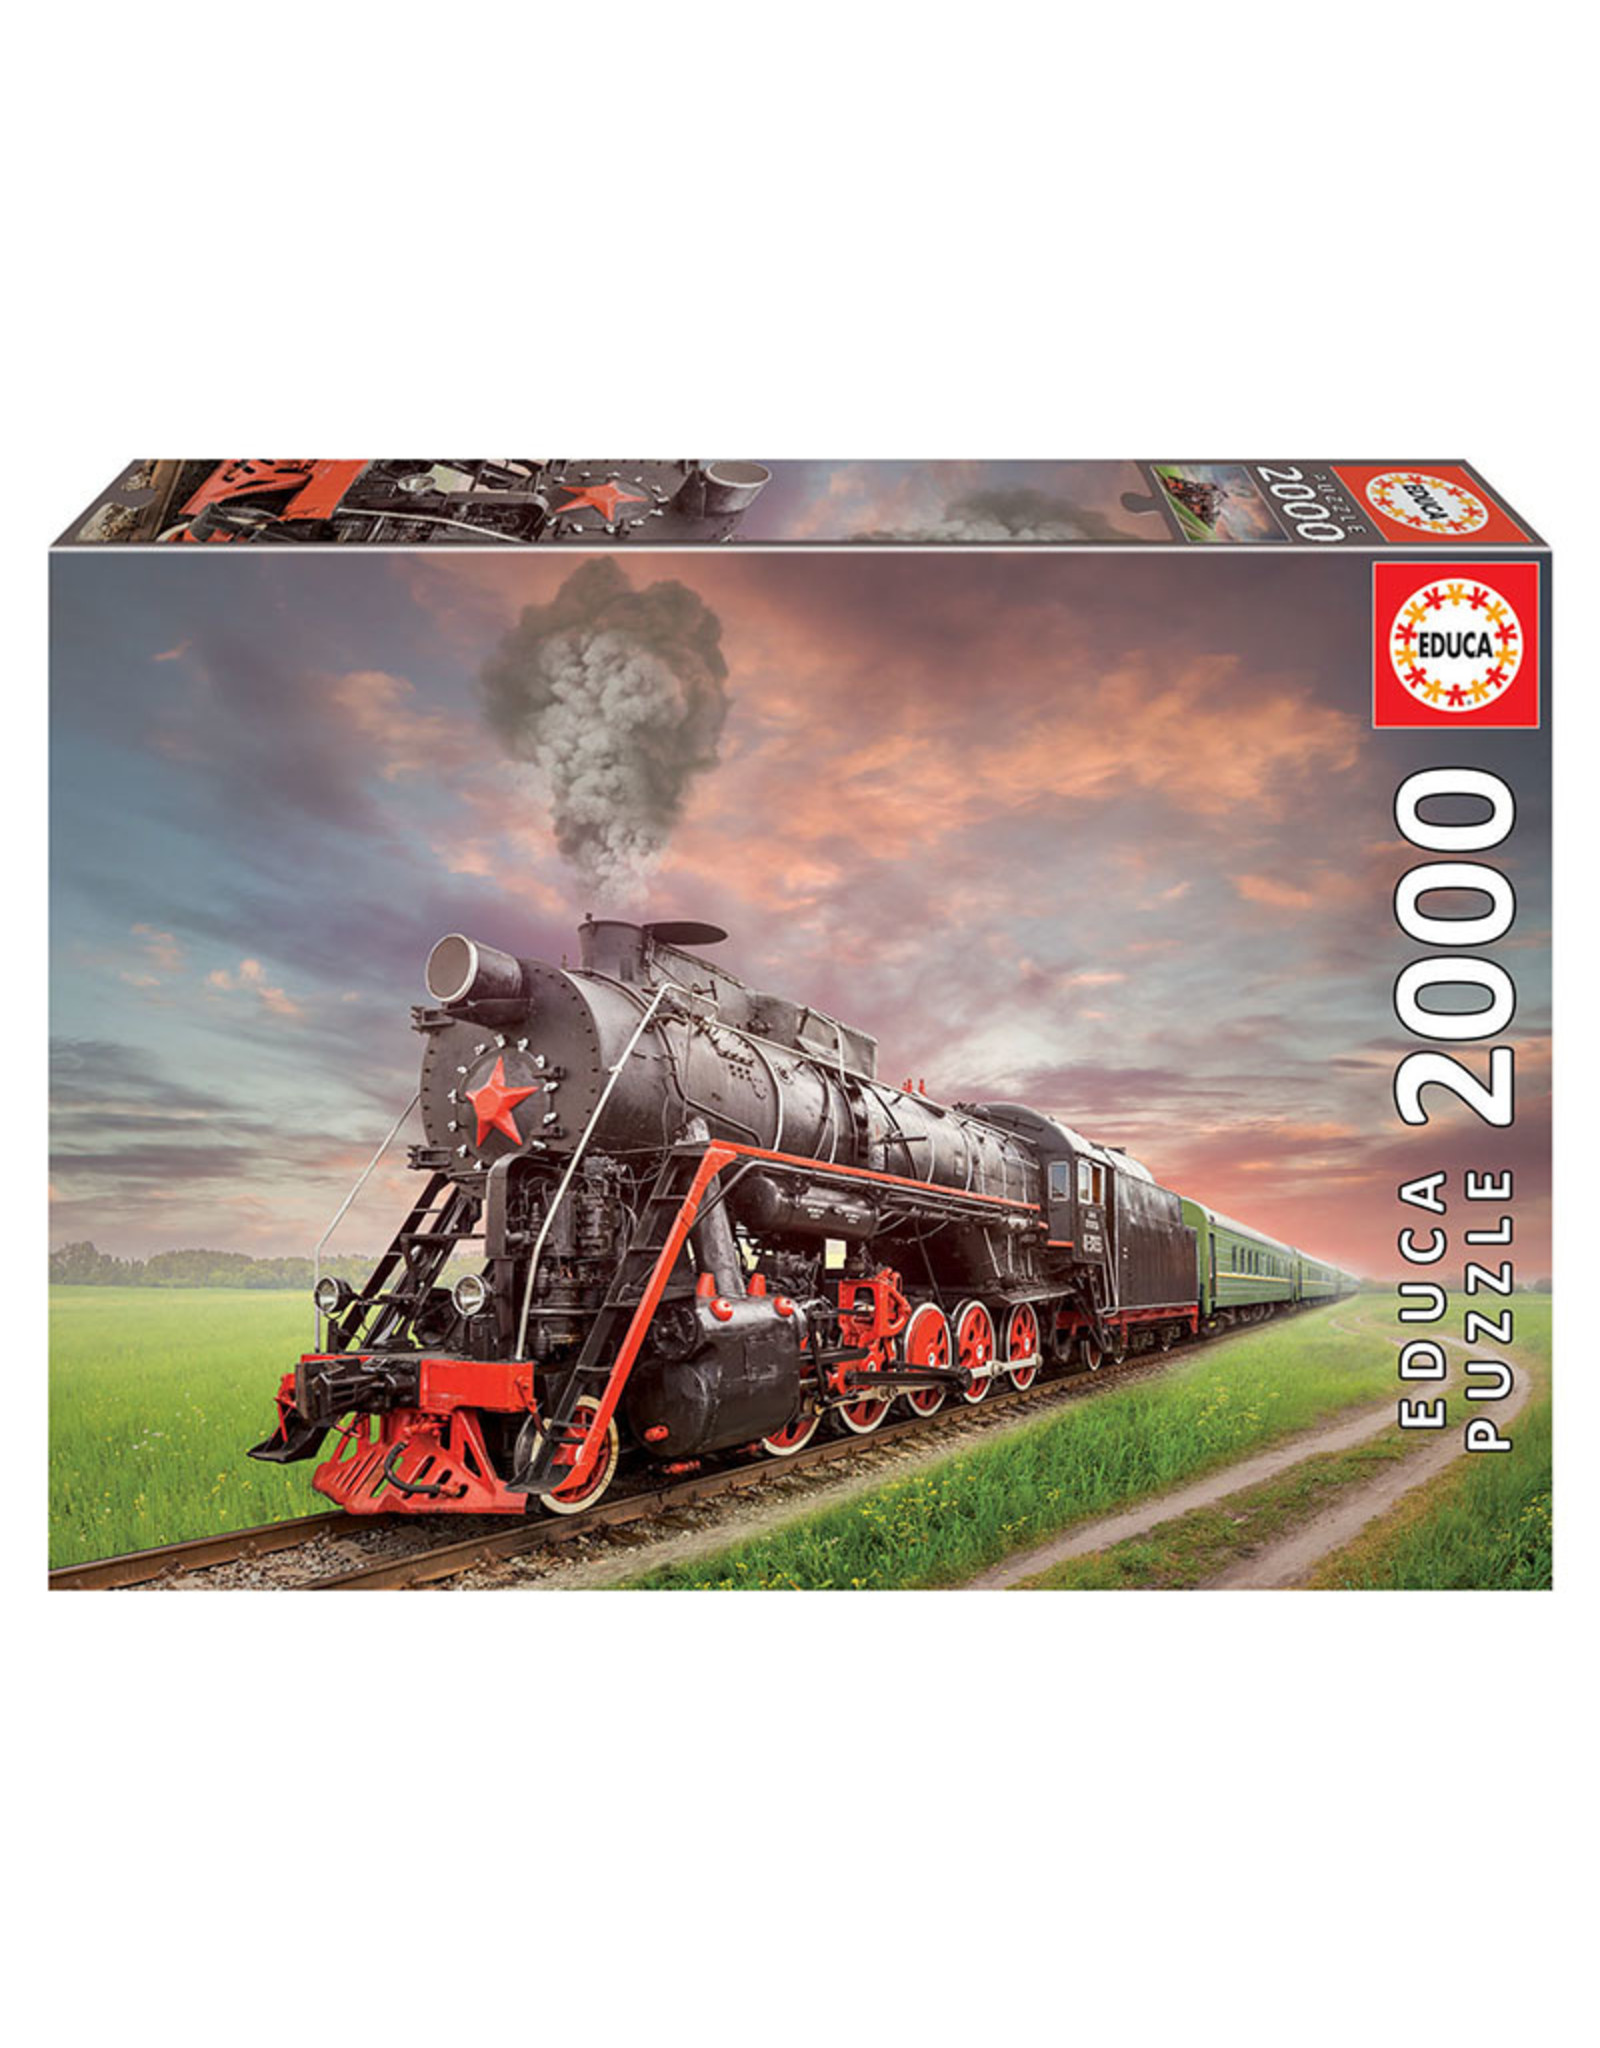 Educa Puzzles Steam Train 2000pc